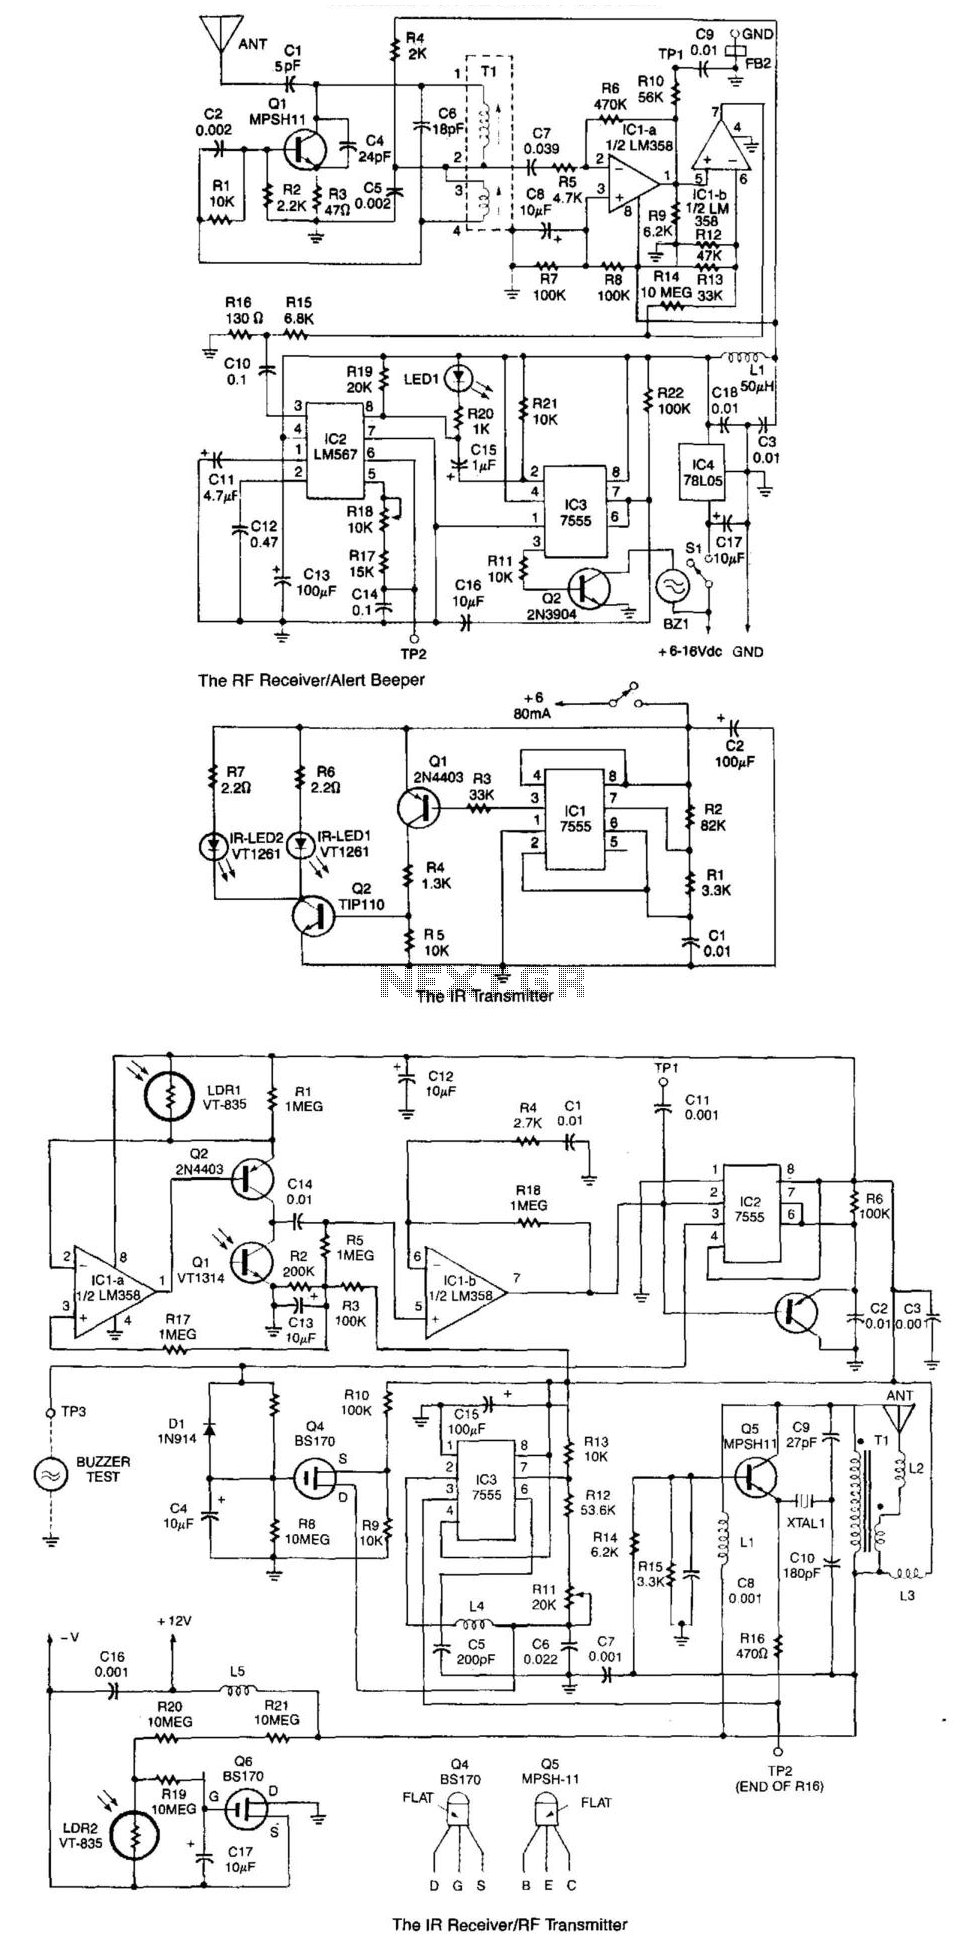 Wireless Ir Security System - schematic